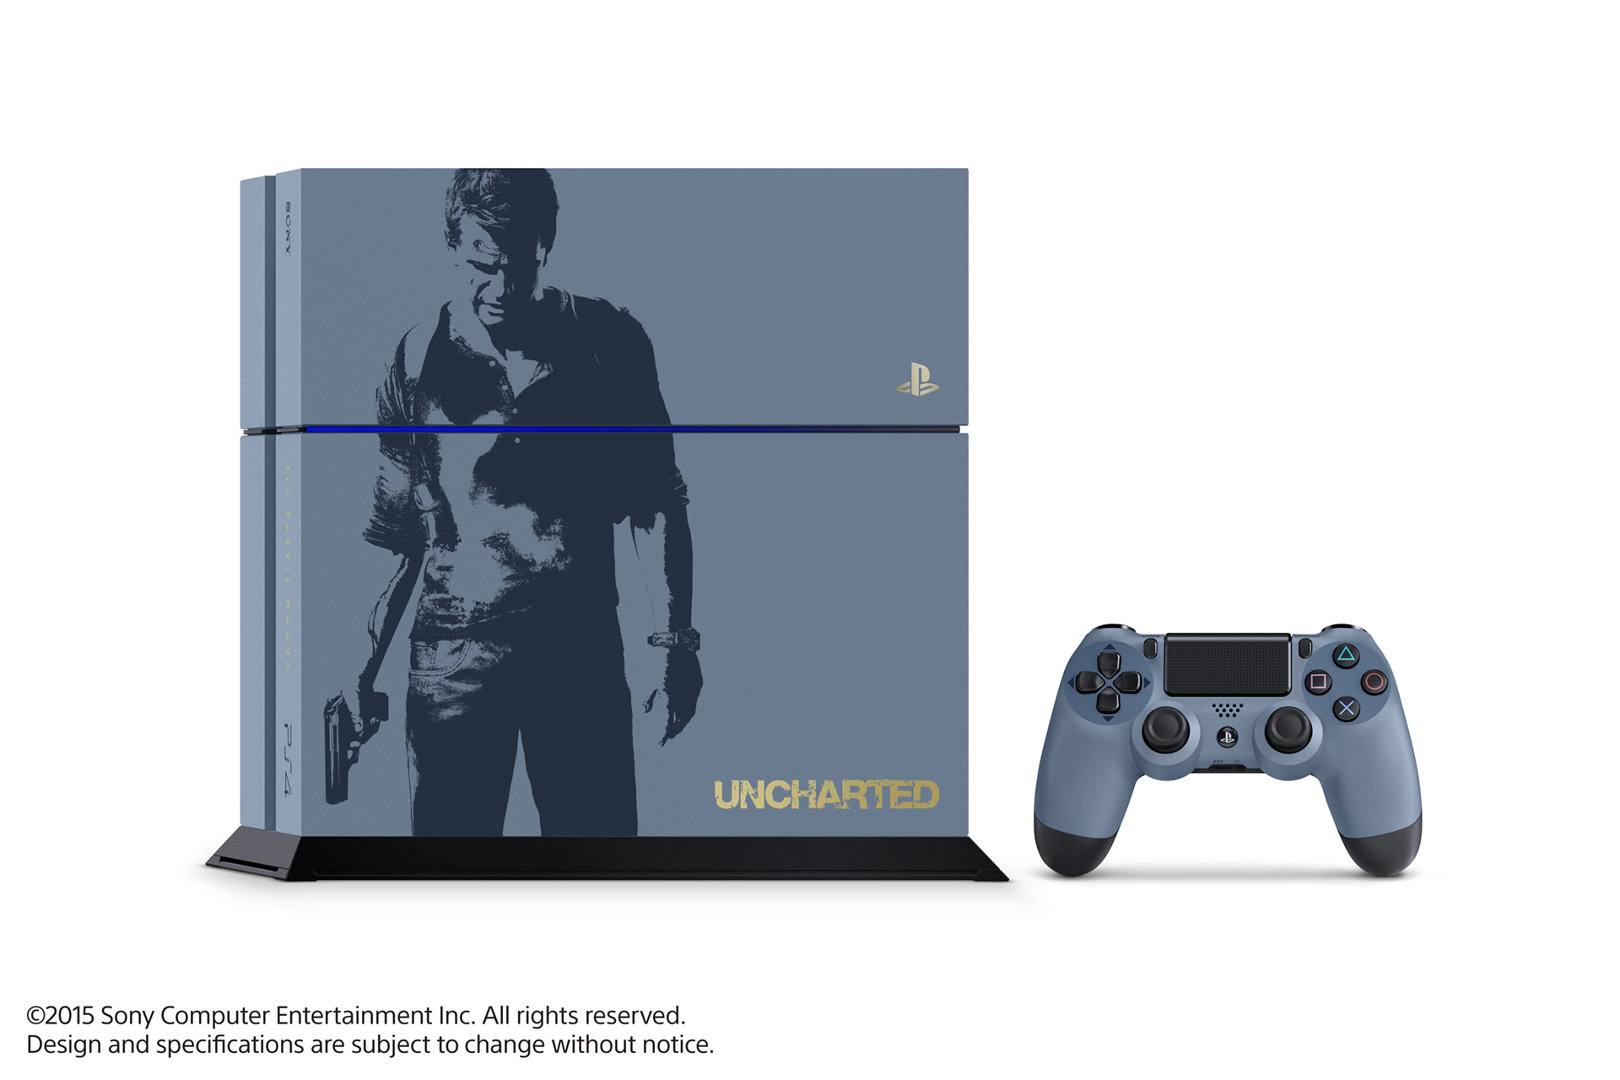 Uncharted 4: A Thief's End Limited Edition PS4 Bundle Revealed 7